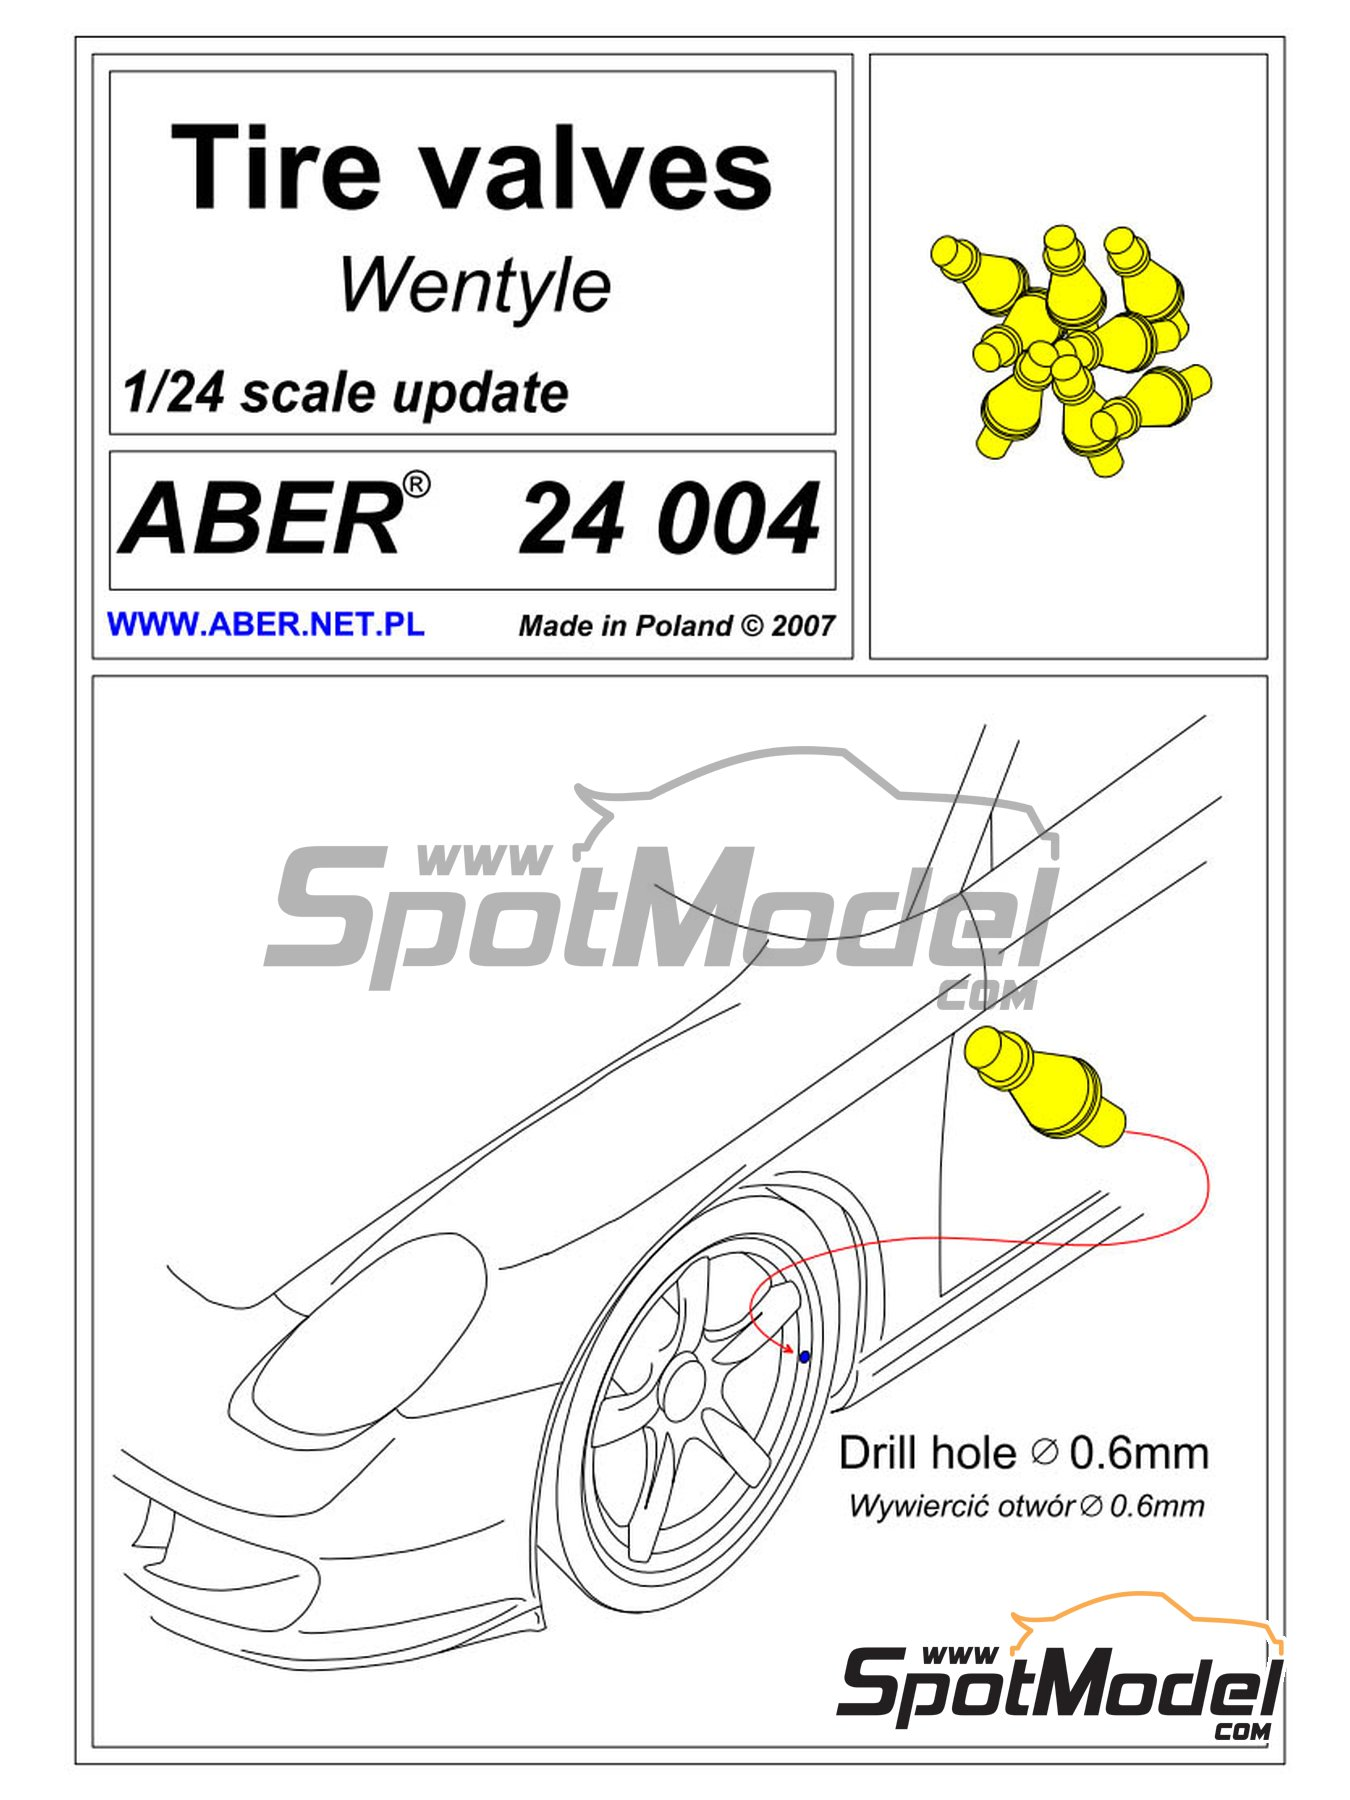 Air valves | Air valve in 1/24 scale manufactured by Aber (ref. 24.004) image